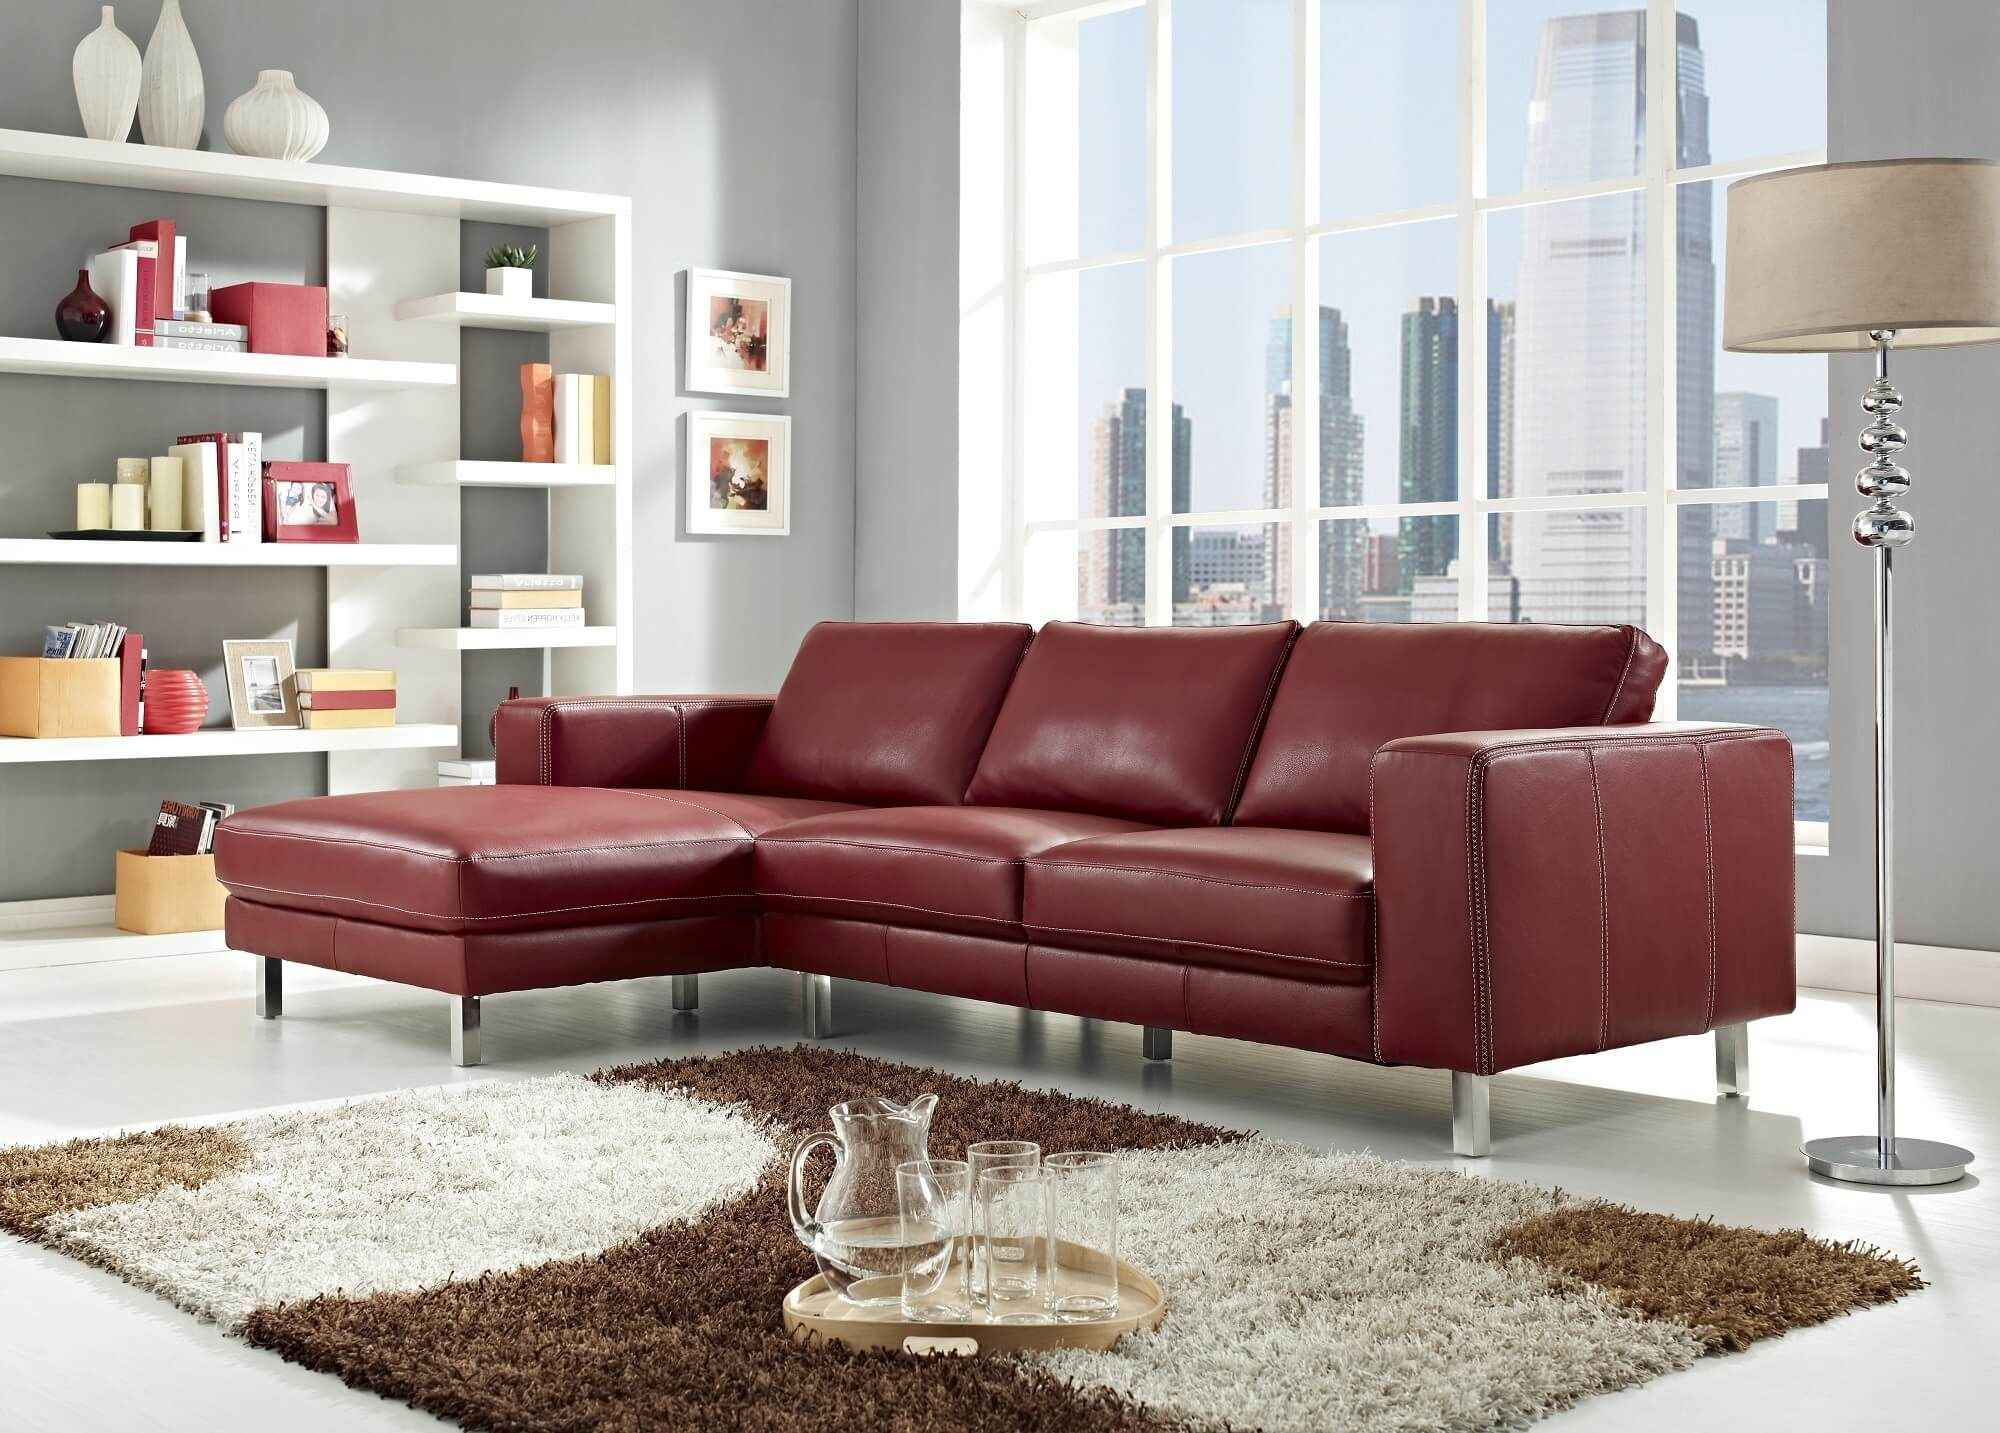 Pin On Red Leather Sofa